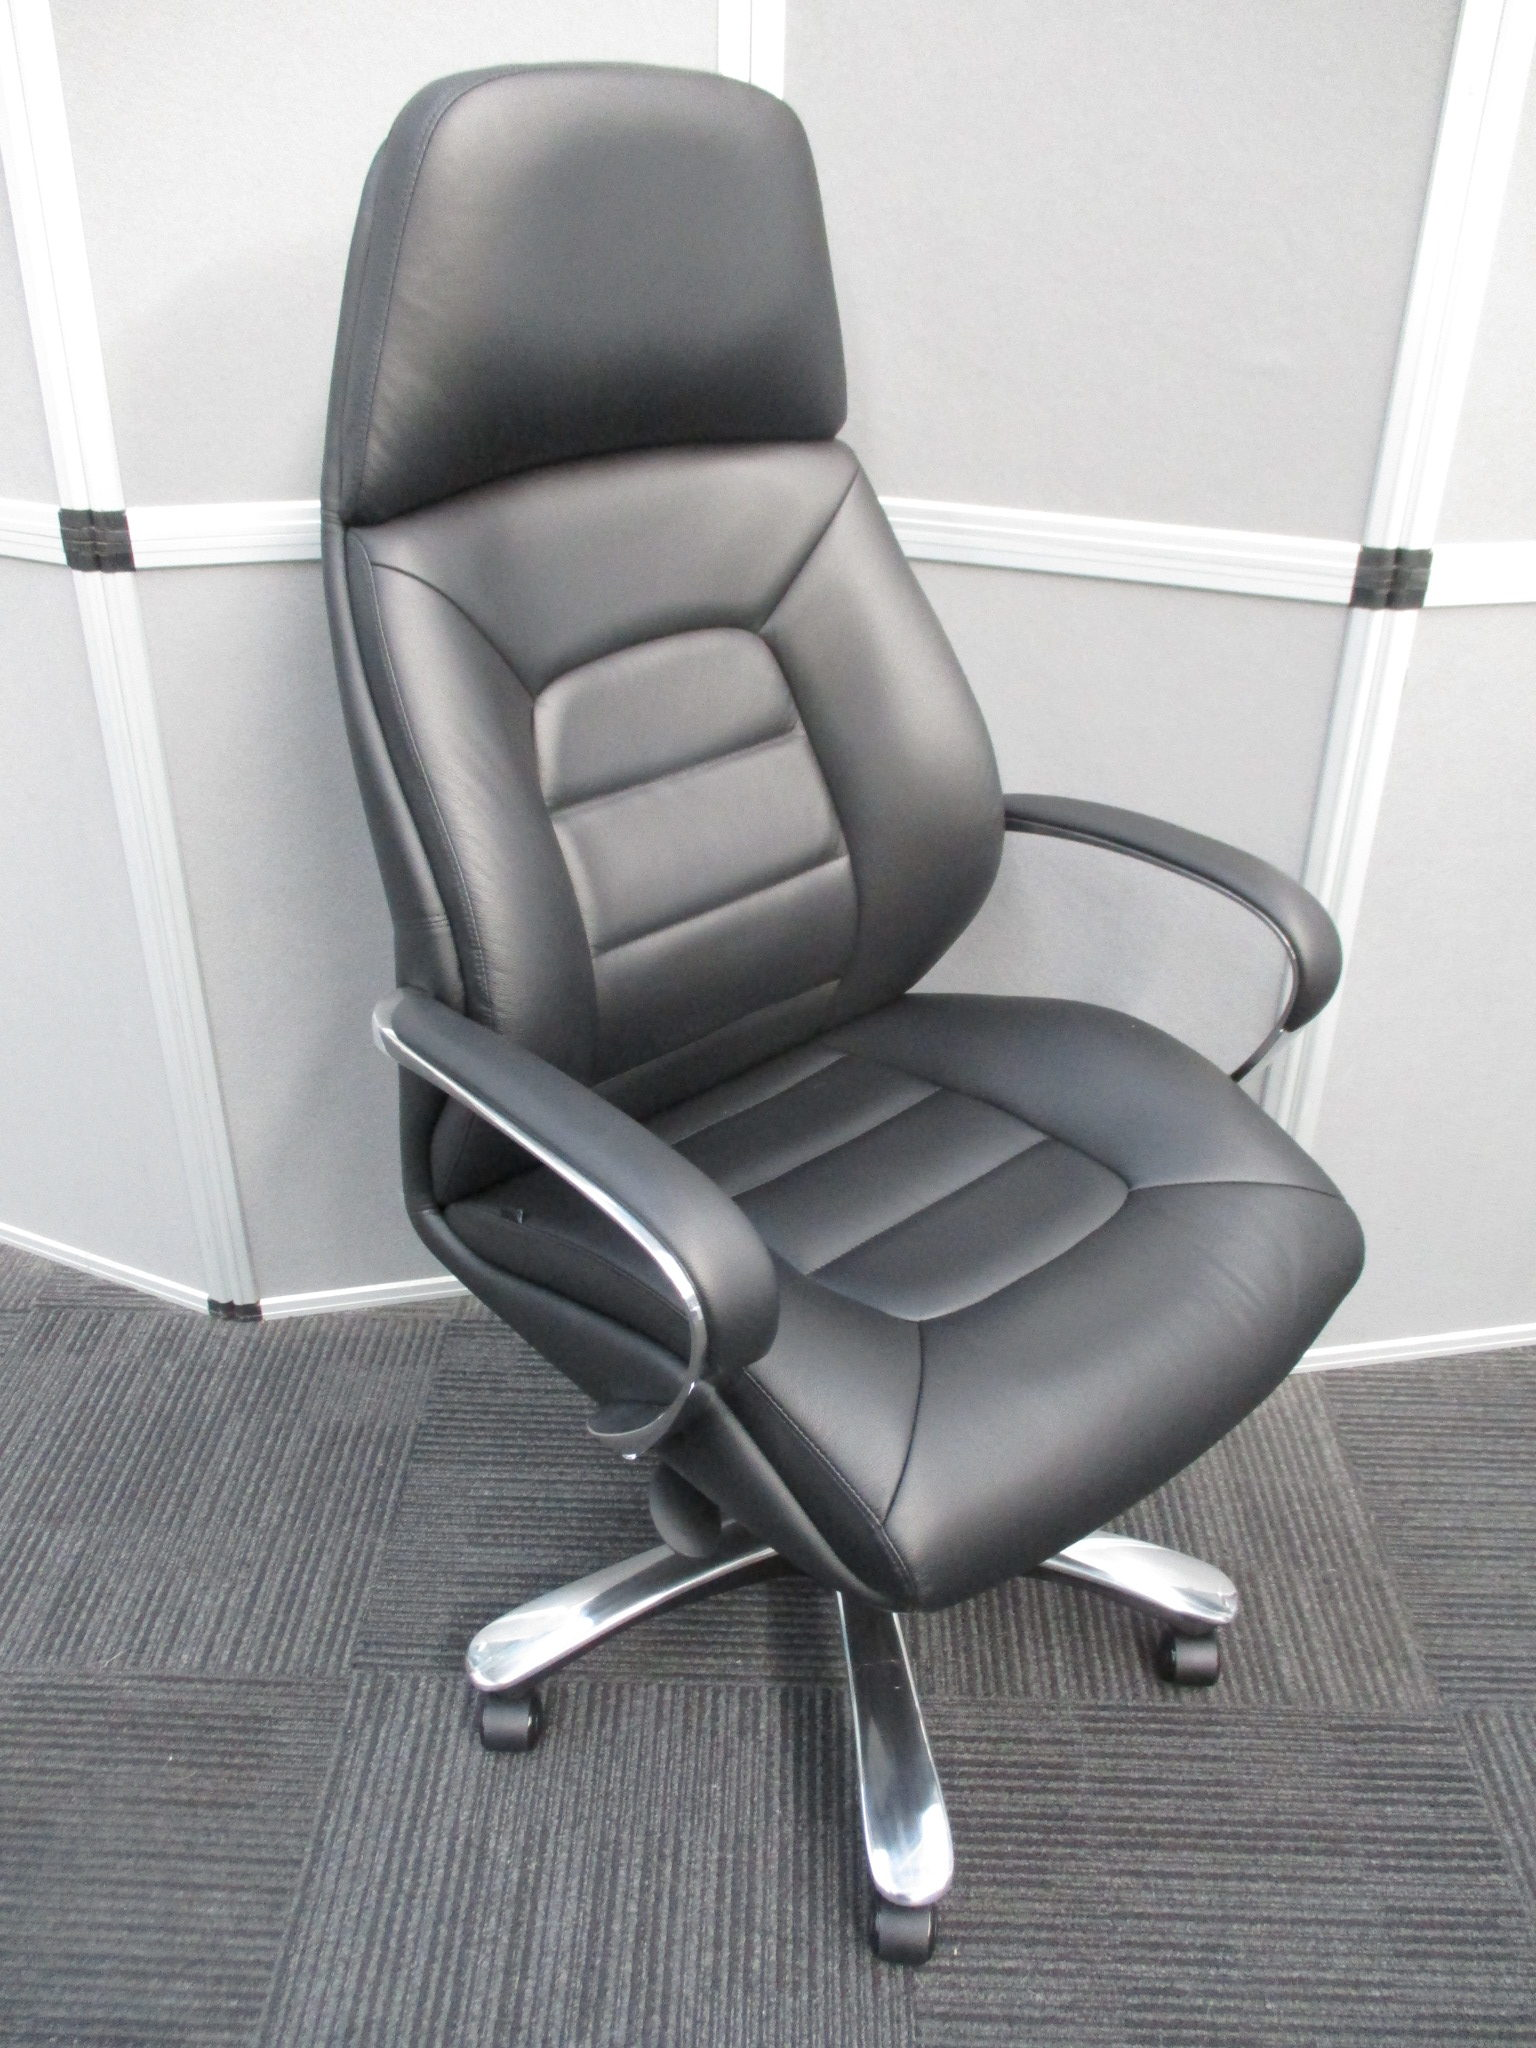 New Magnum Leather Chairs $750